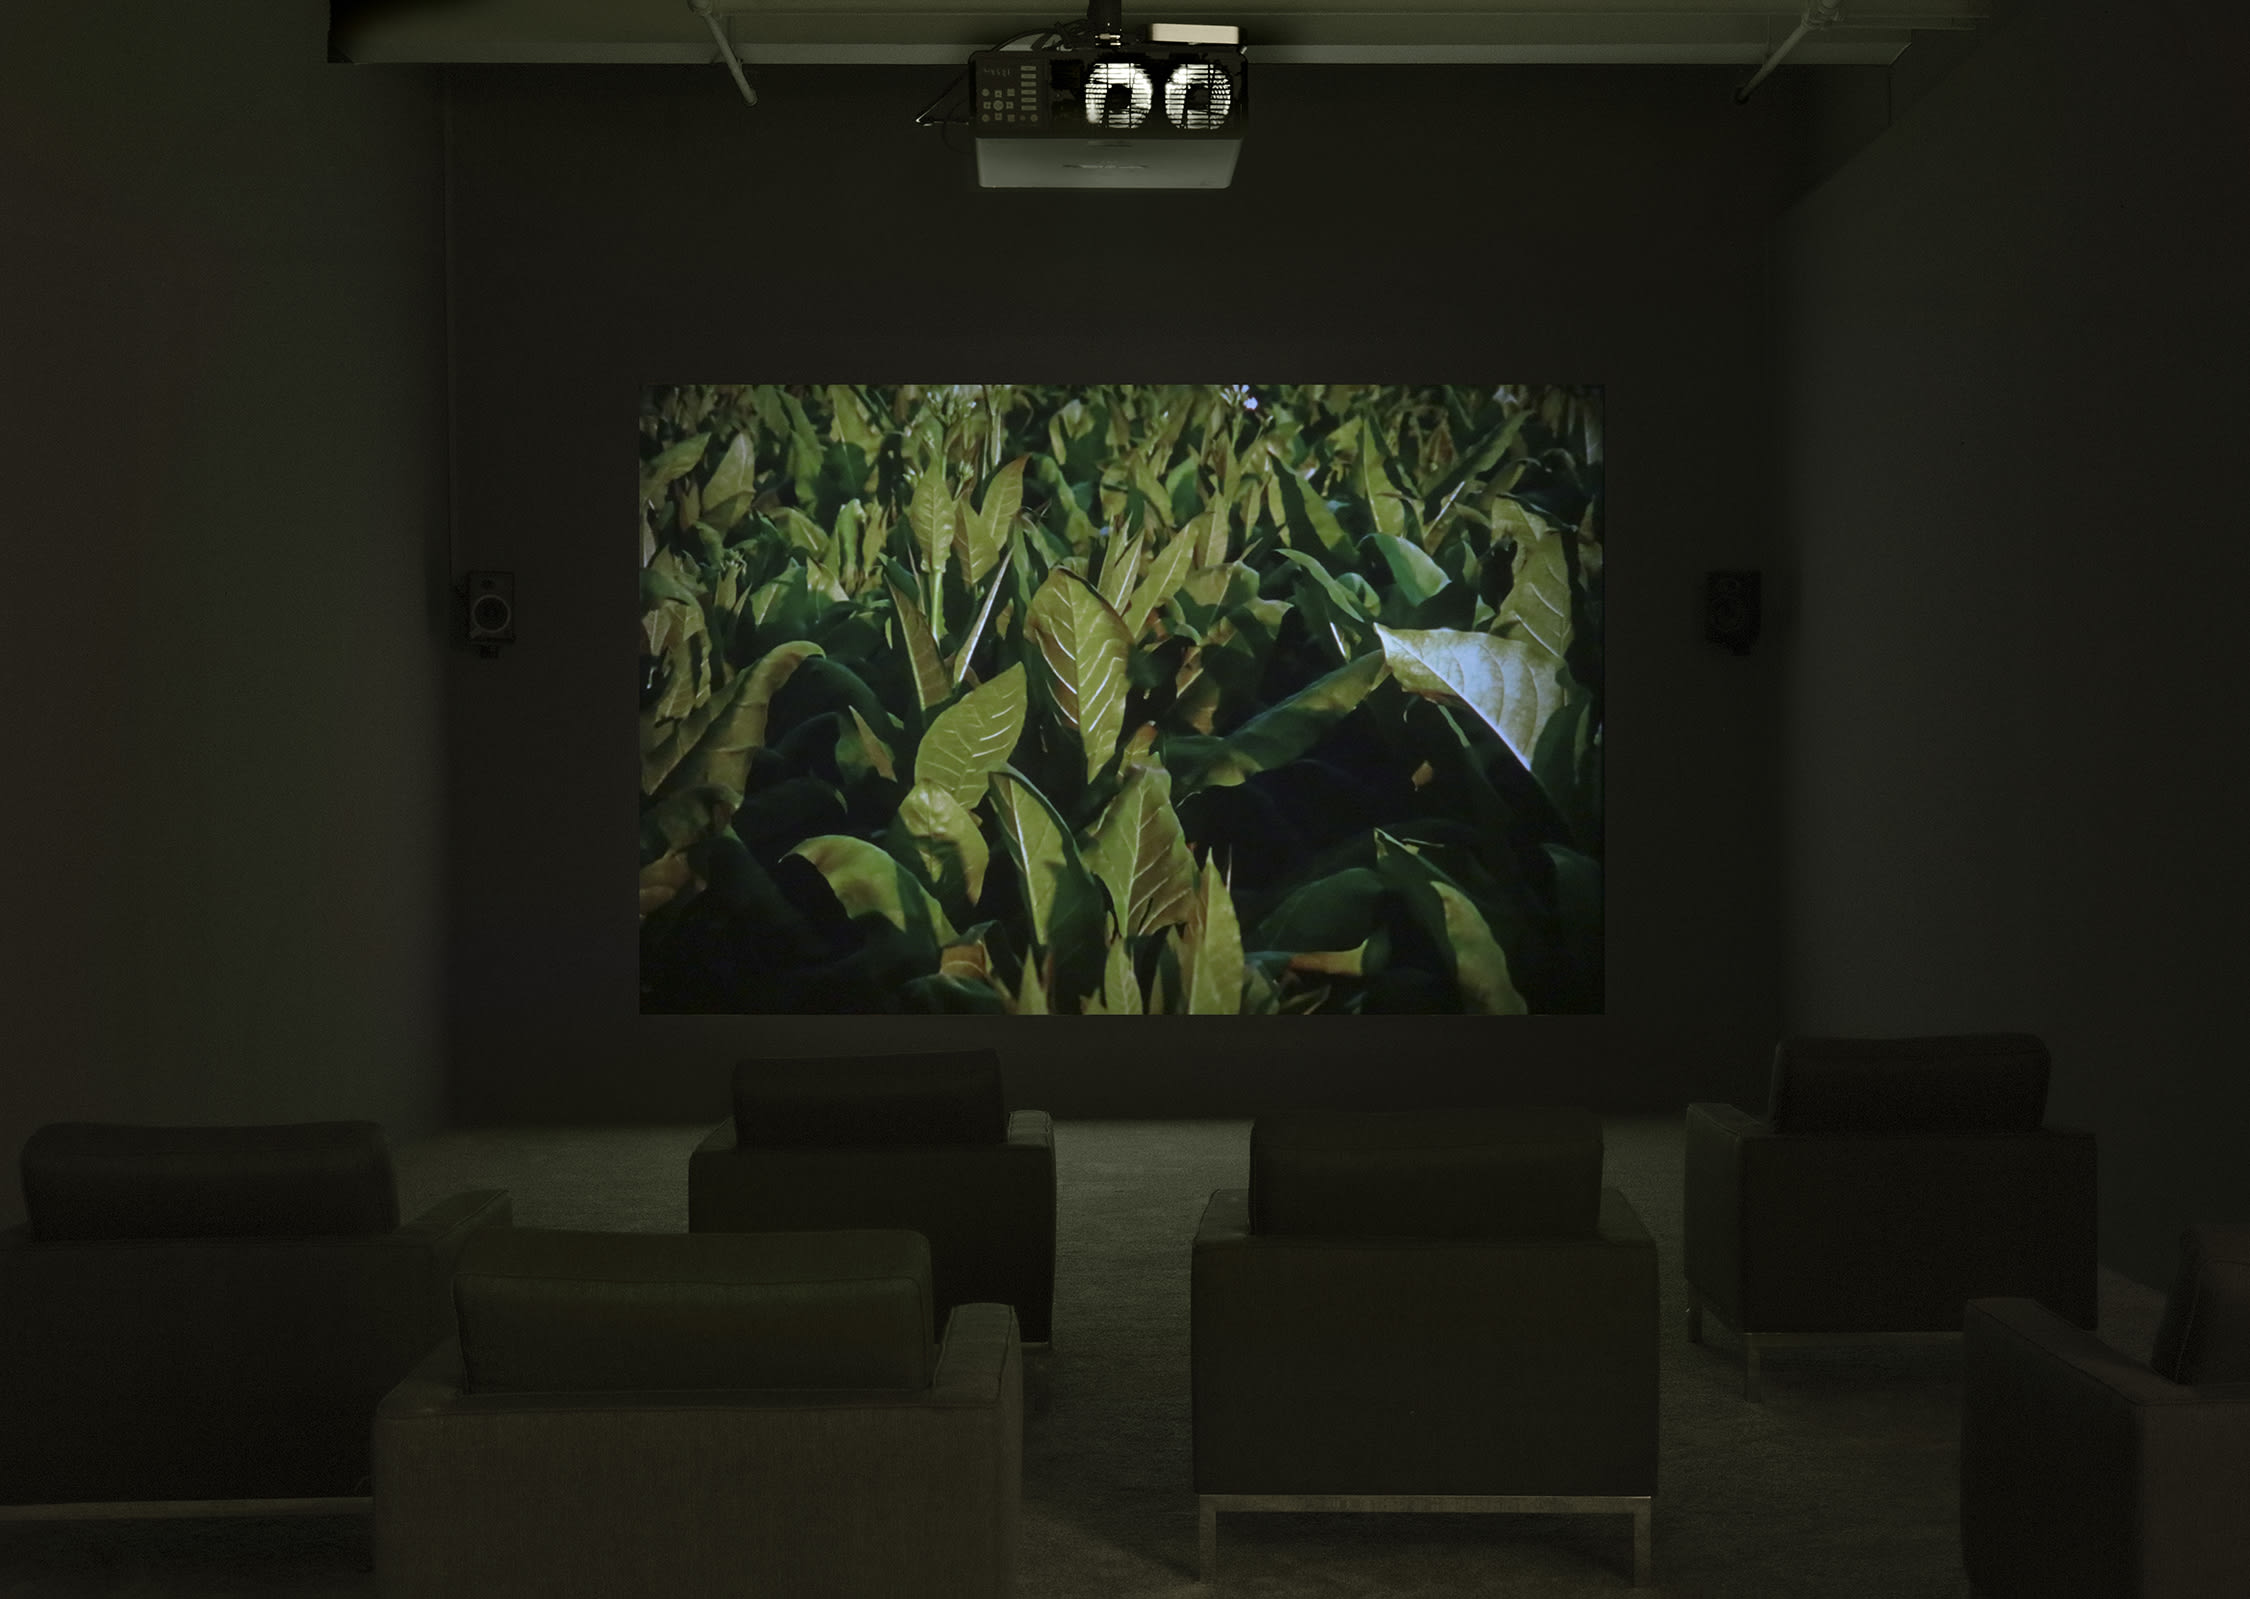 Installation view of Lothar Baumgarten's film. Shot contains a close-up of green plant leaves.